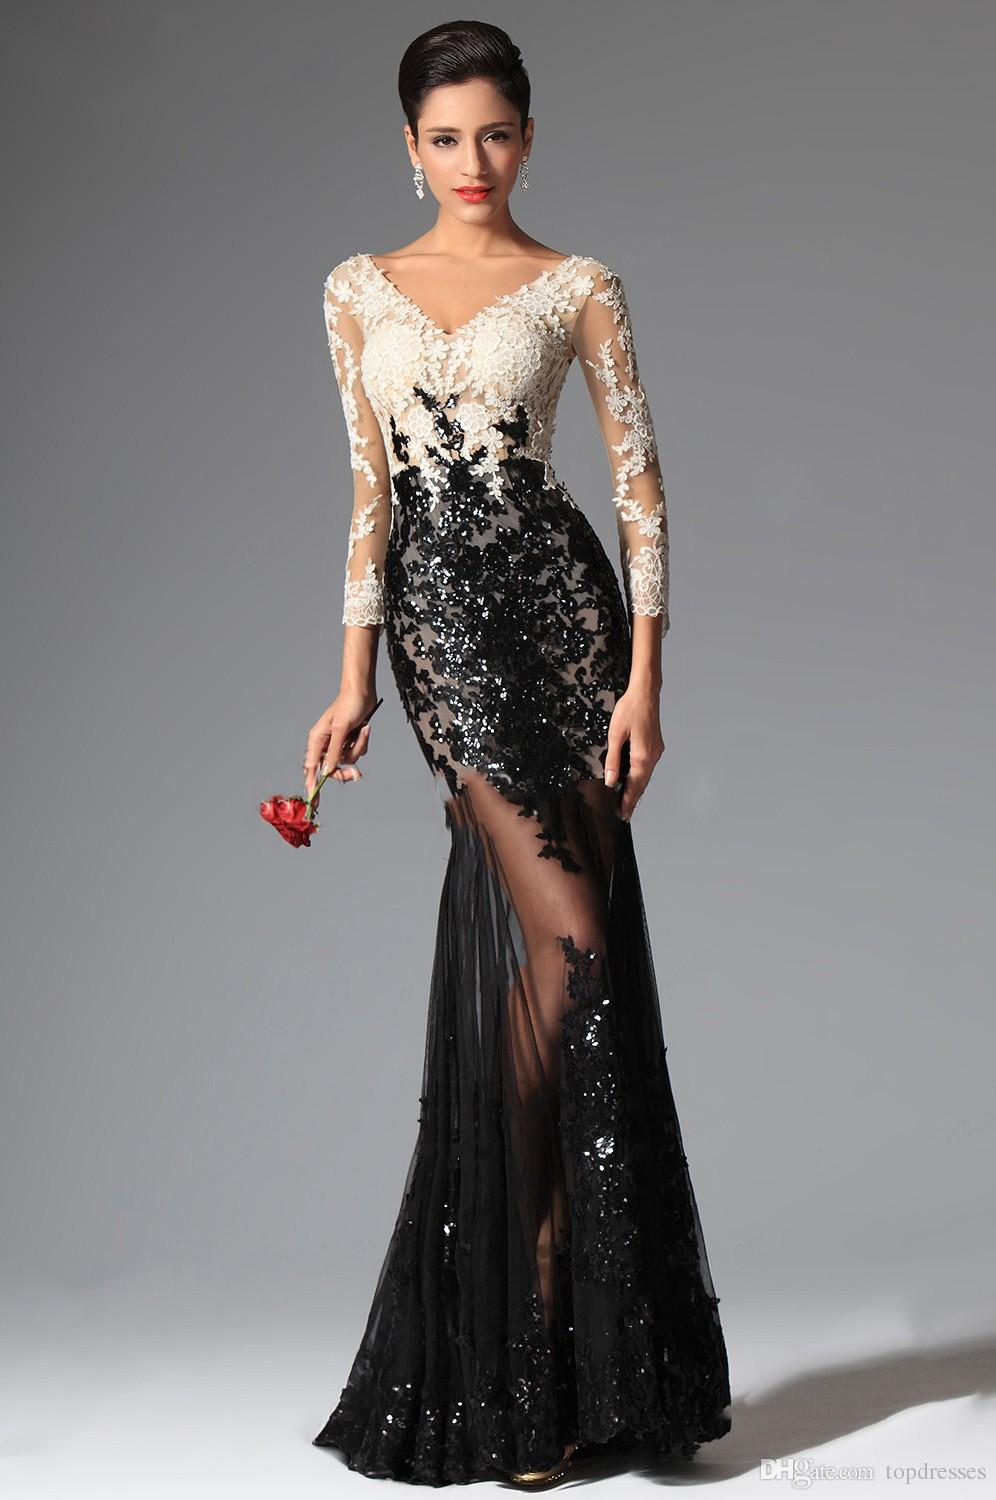 681607470d Sexy Sheer Lace Evening Dresses 2016 Black and White Mermaid Long Sleeves  Prom Dresses V Neck Sequins Appliqued Lace Prom Gowns-in Evening Dresses  from ...